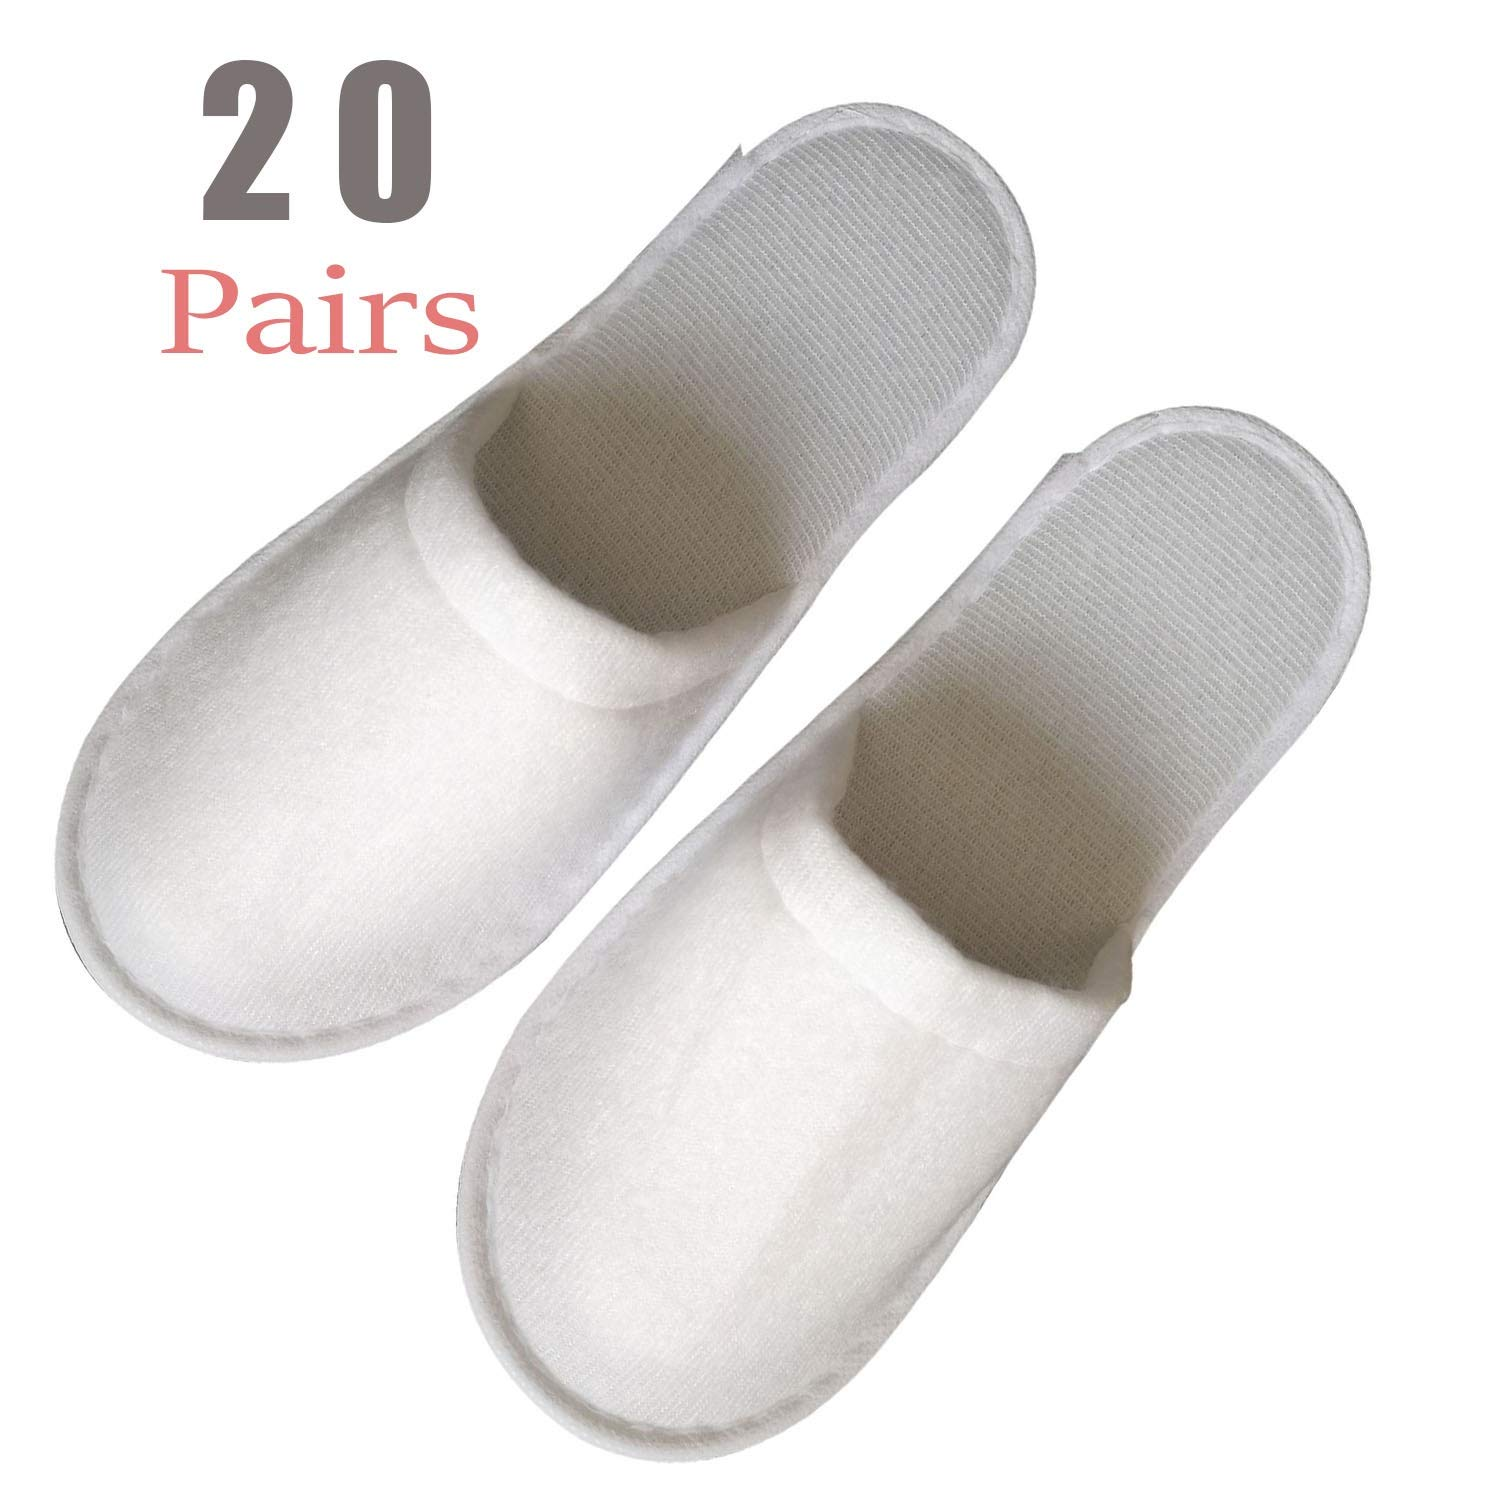 20 Pairs Slippers Women and Men Disposable Portable Hotel Disposable Closed Toe Pull Plush Spa Slippers Women's Comfort Slip Waffle Slippers Men Universal Size Spa-